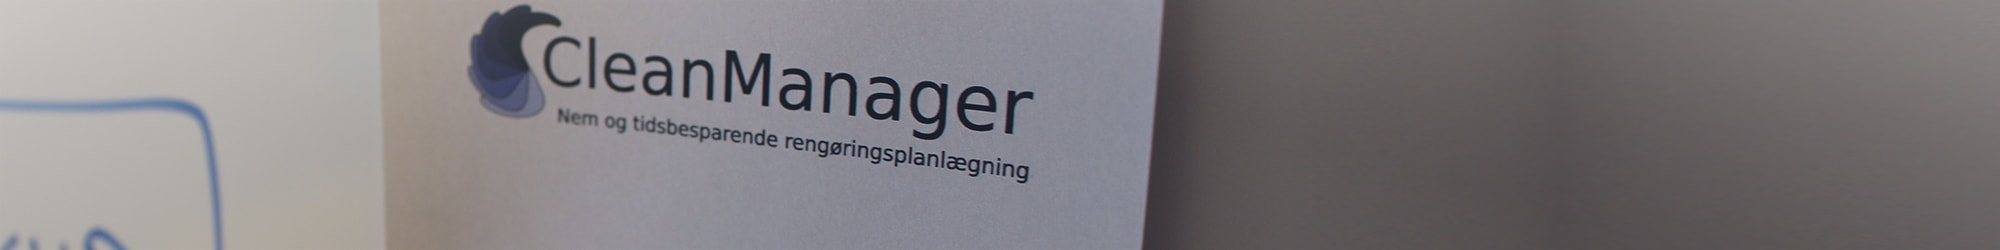 CleanManager logo closeup